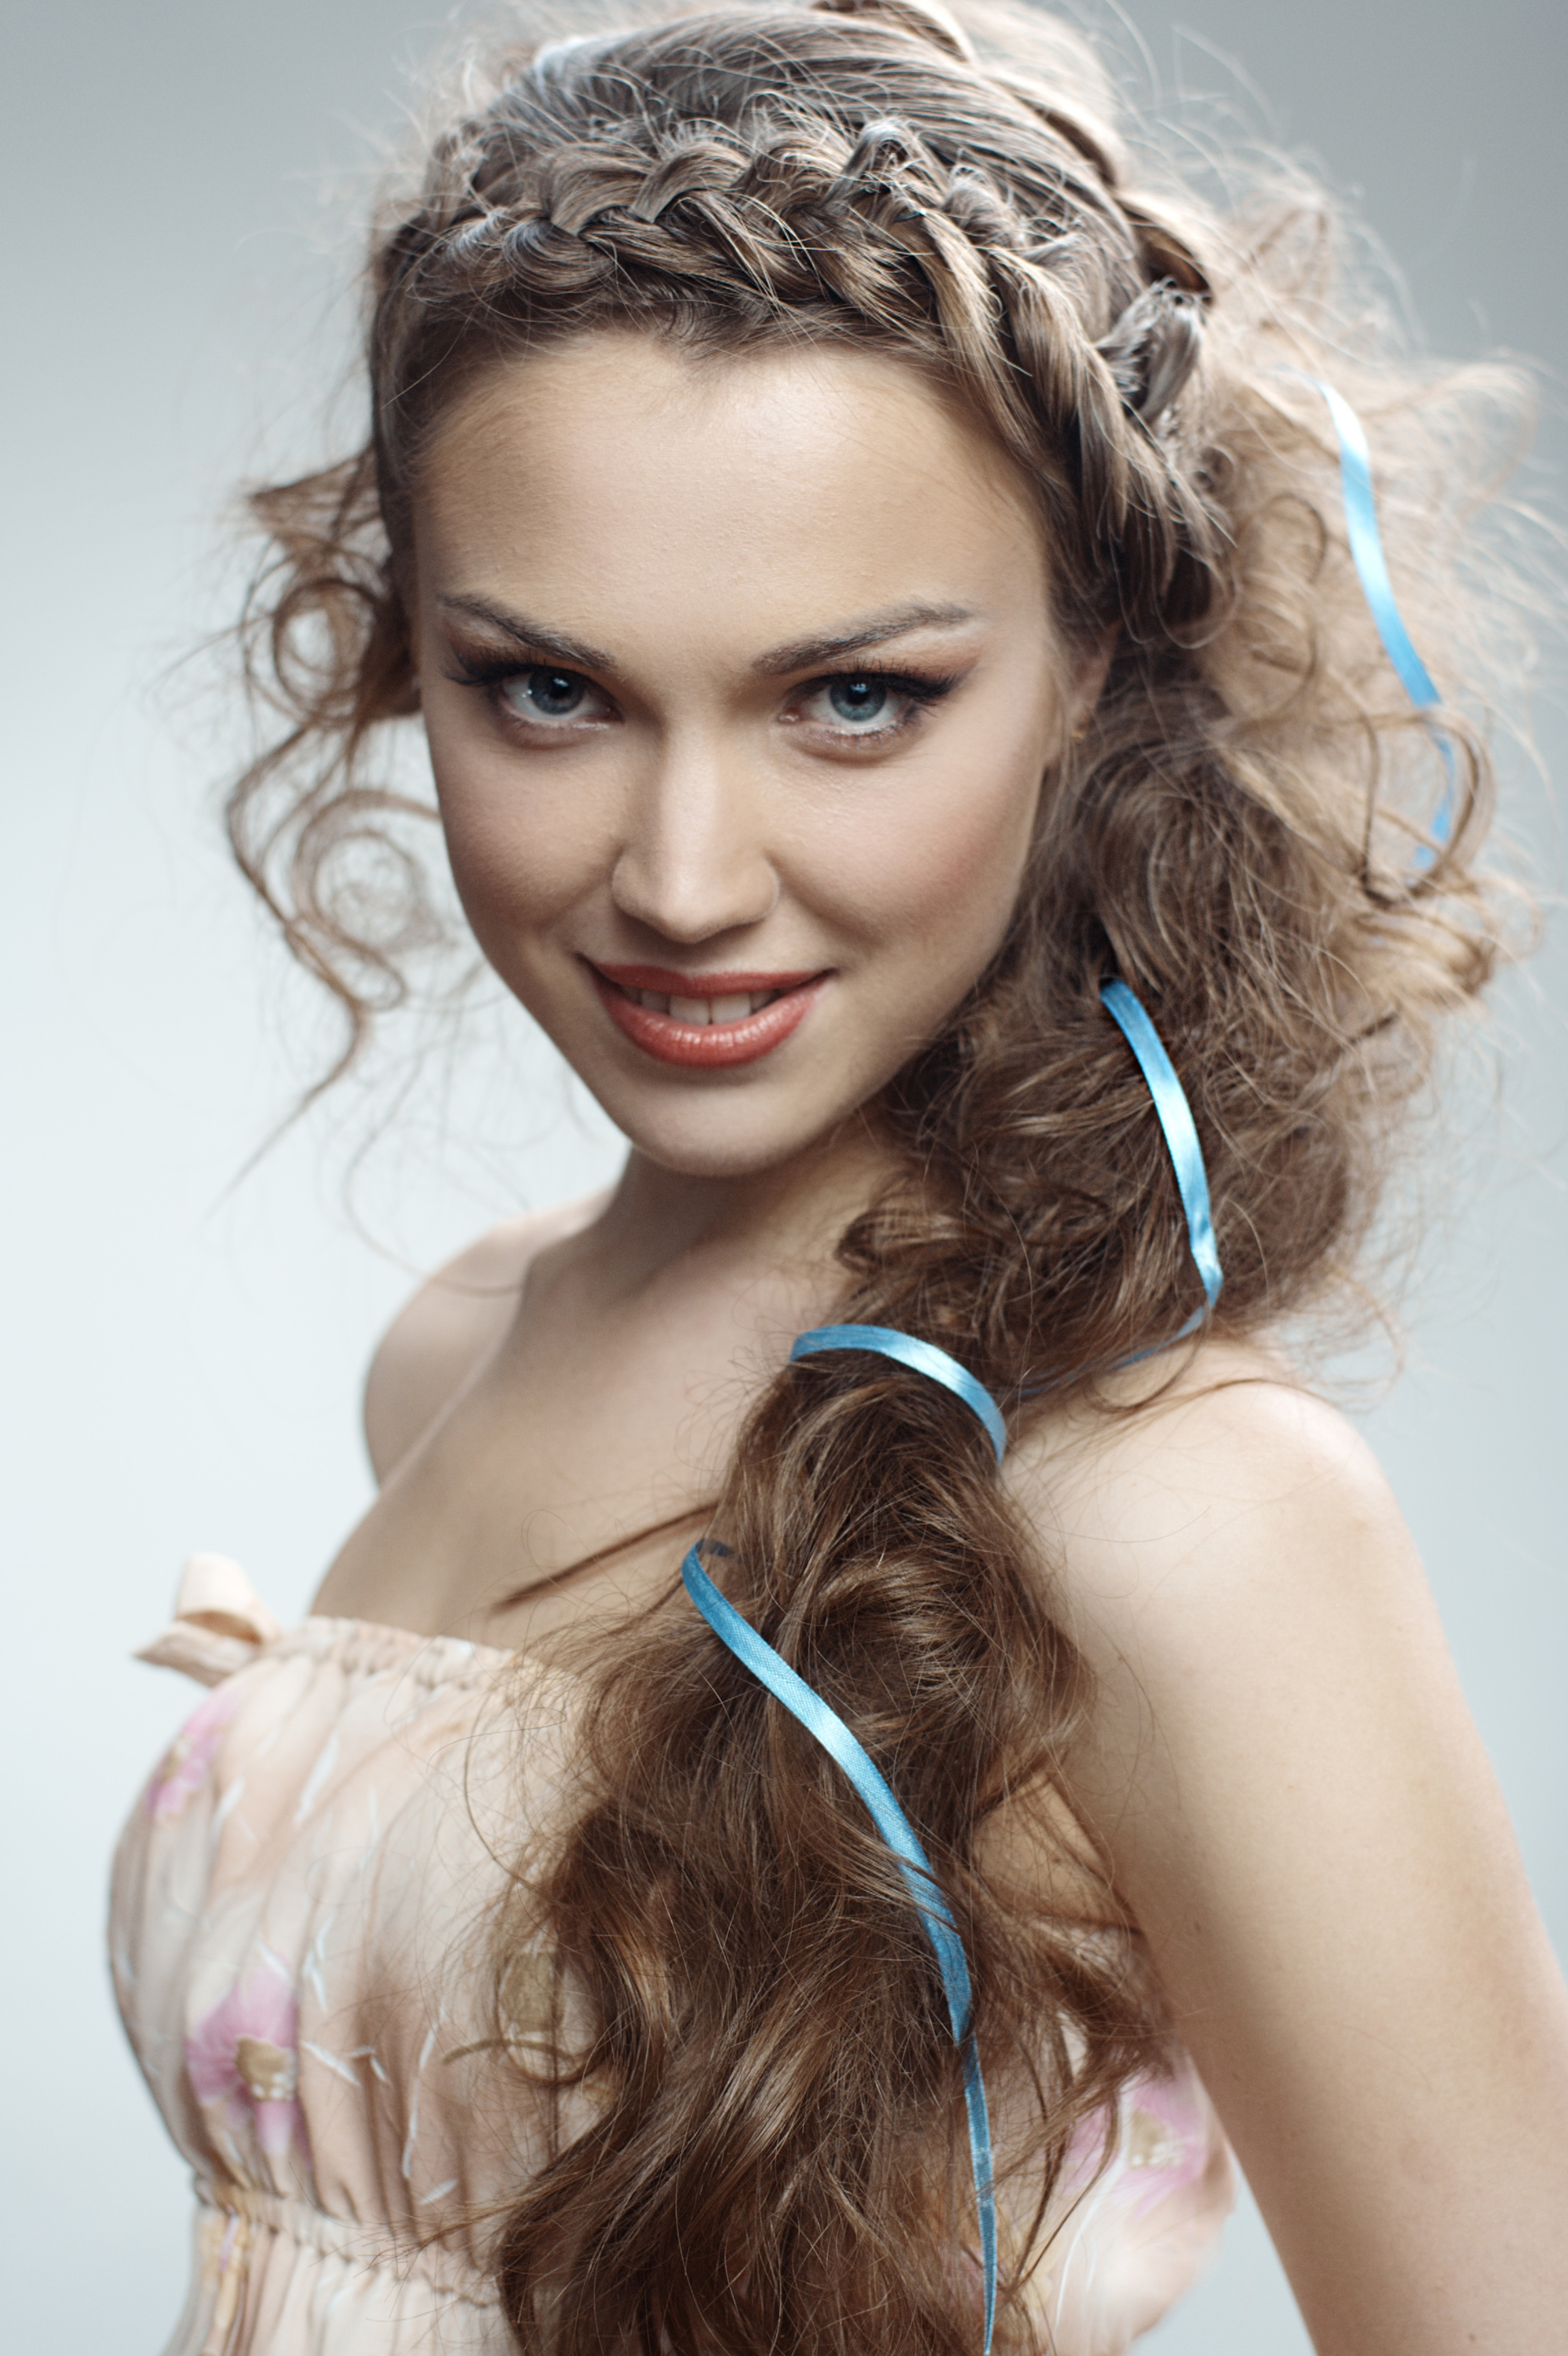 Pretty Russian woman with curly hairs